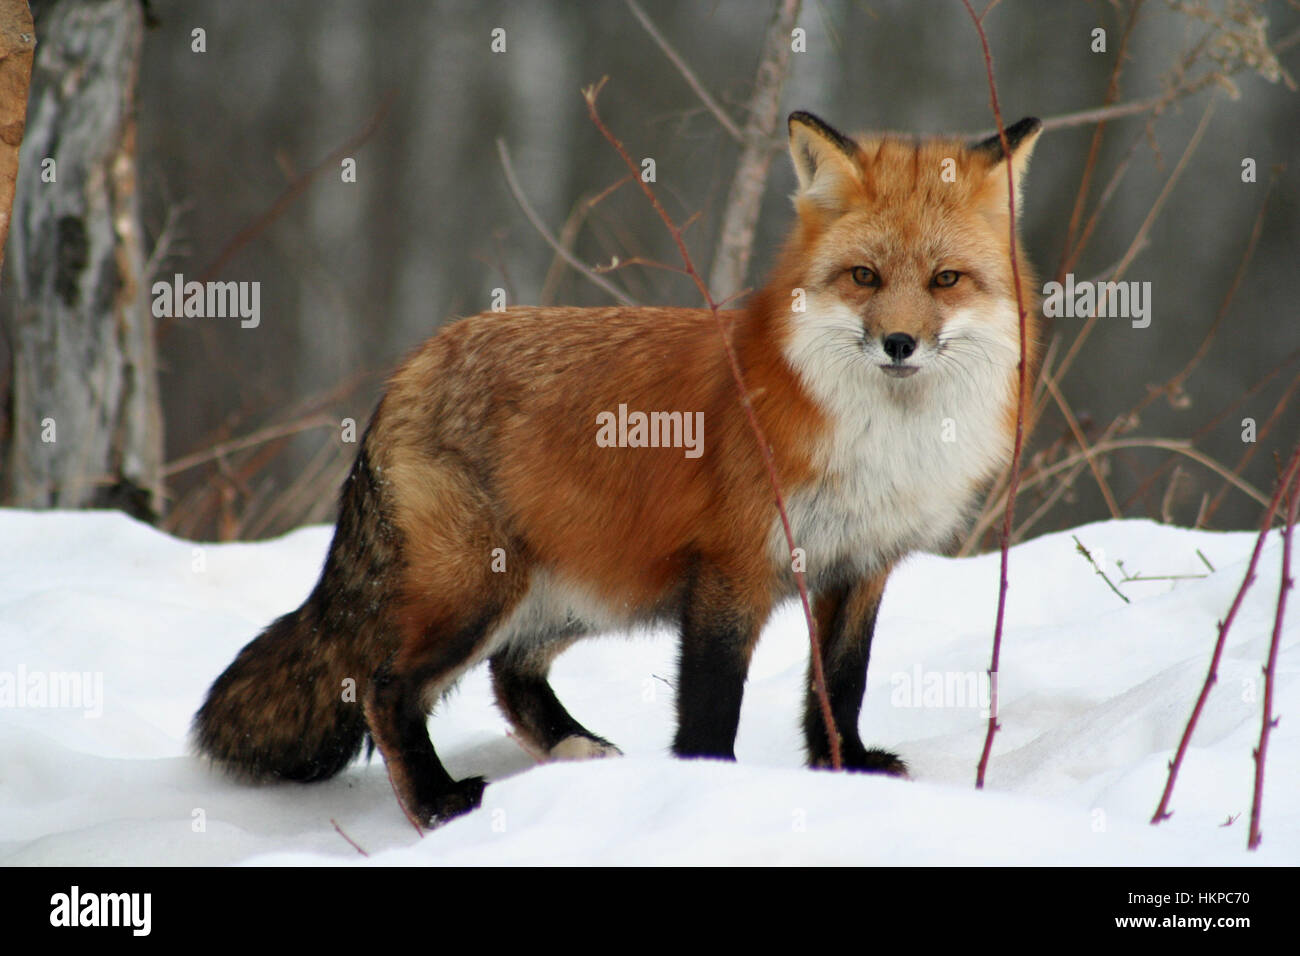 Best 25  Foxes ideas on Pinterest | Cute fox, Fox and Baby red fox